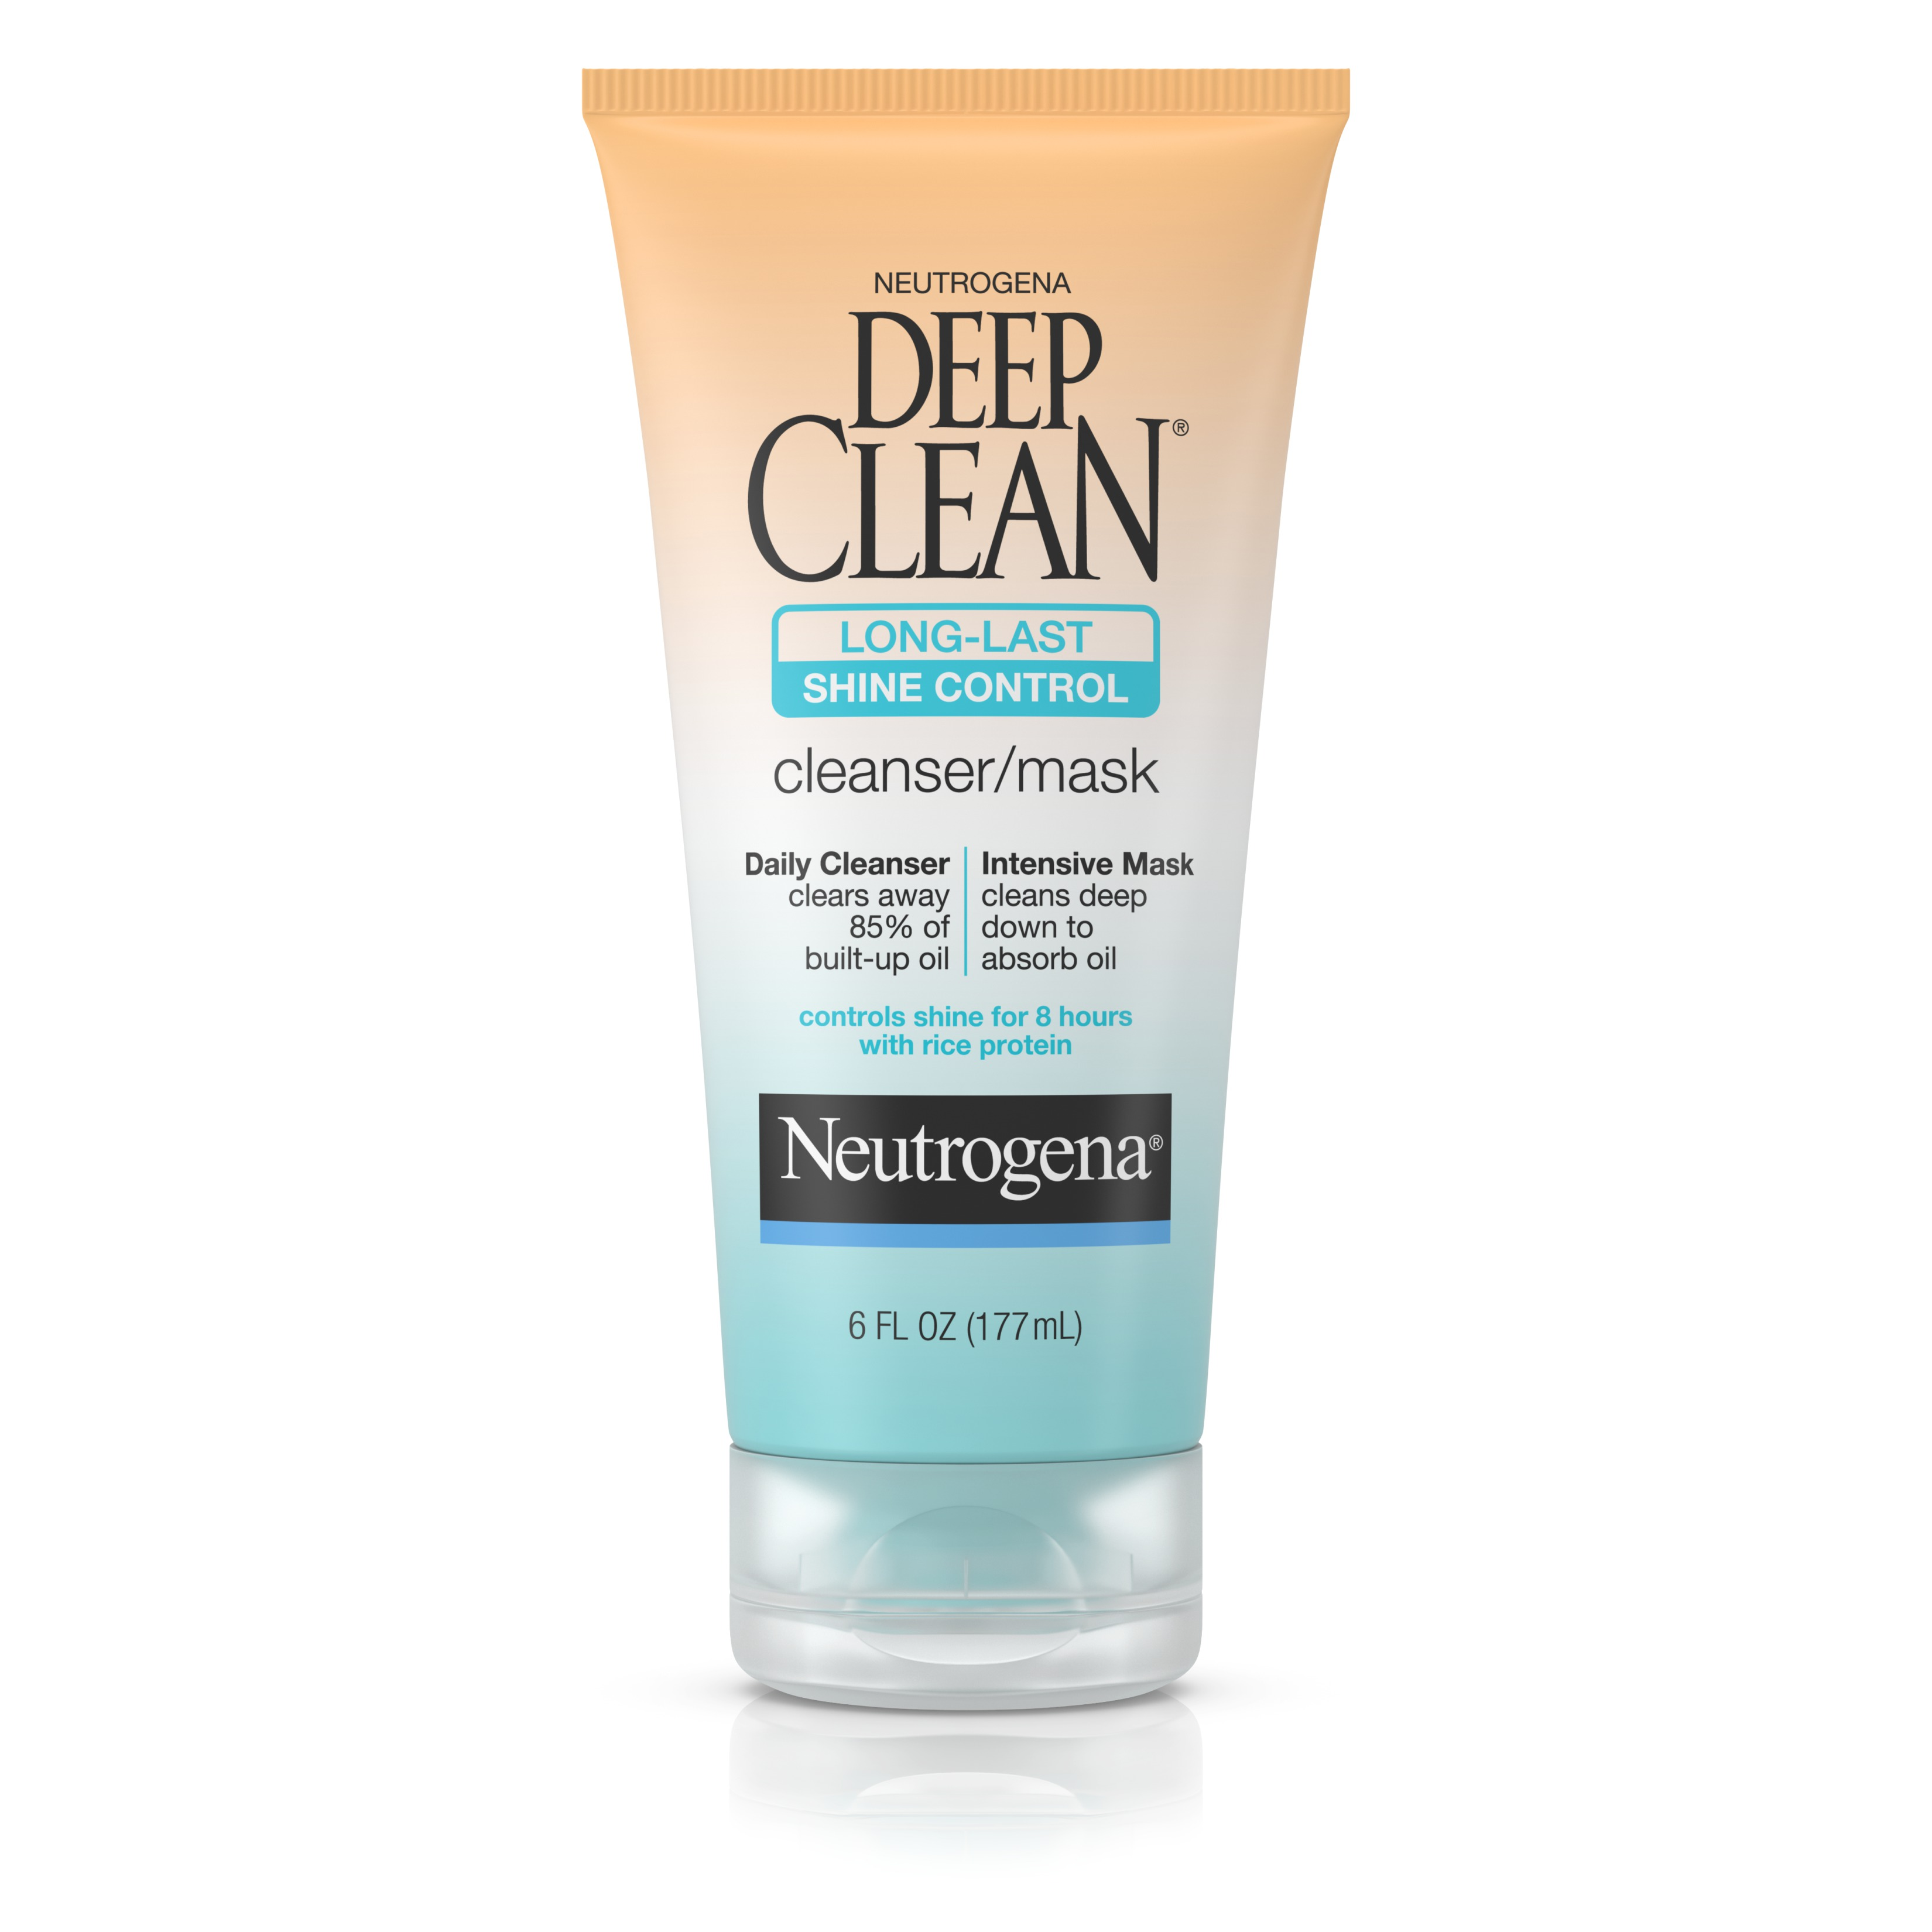 Neutrogena Deep Clean Long-Last Shine Control Facial Cleanser/Mask, 6 Fl. Oz.